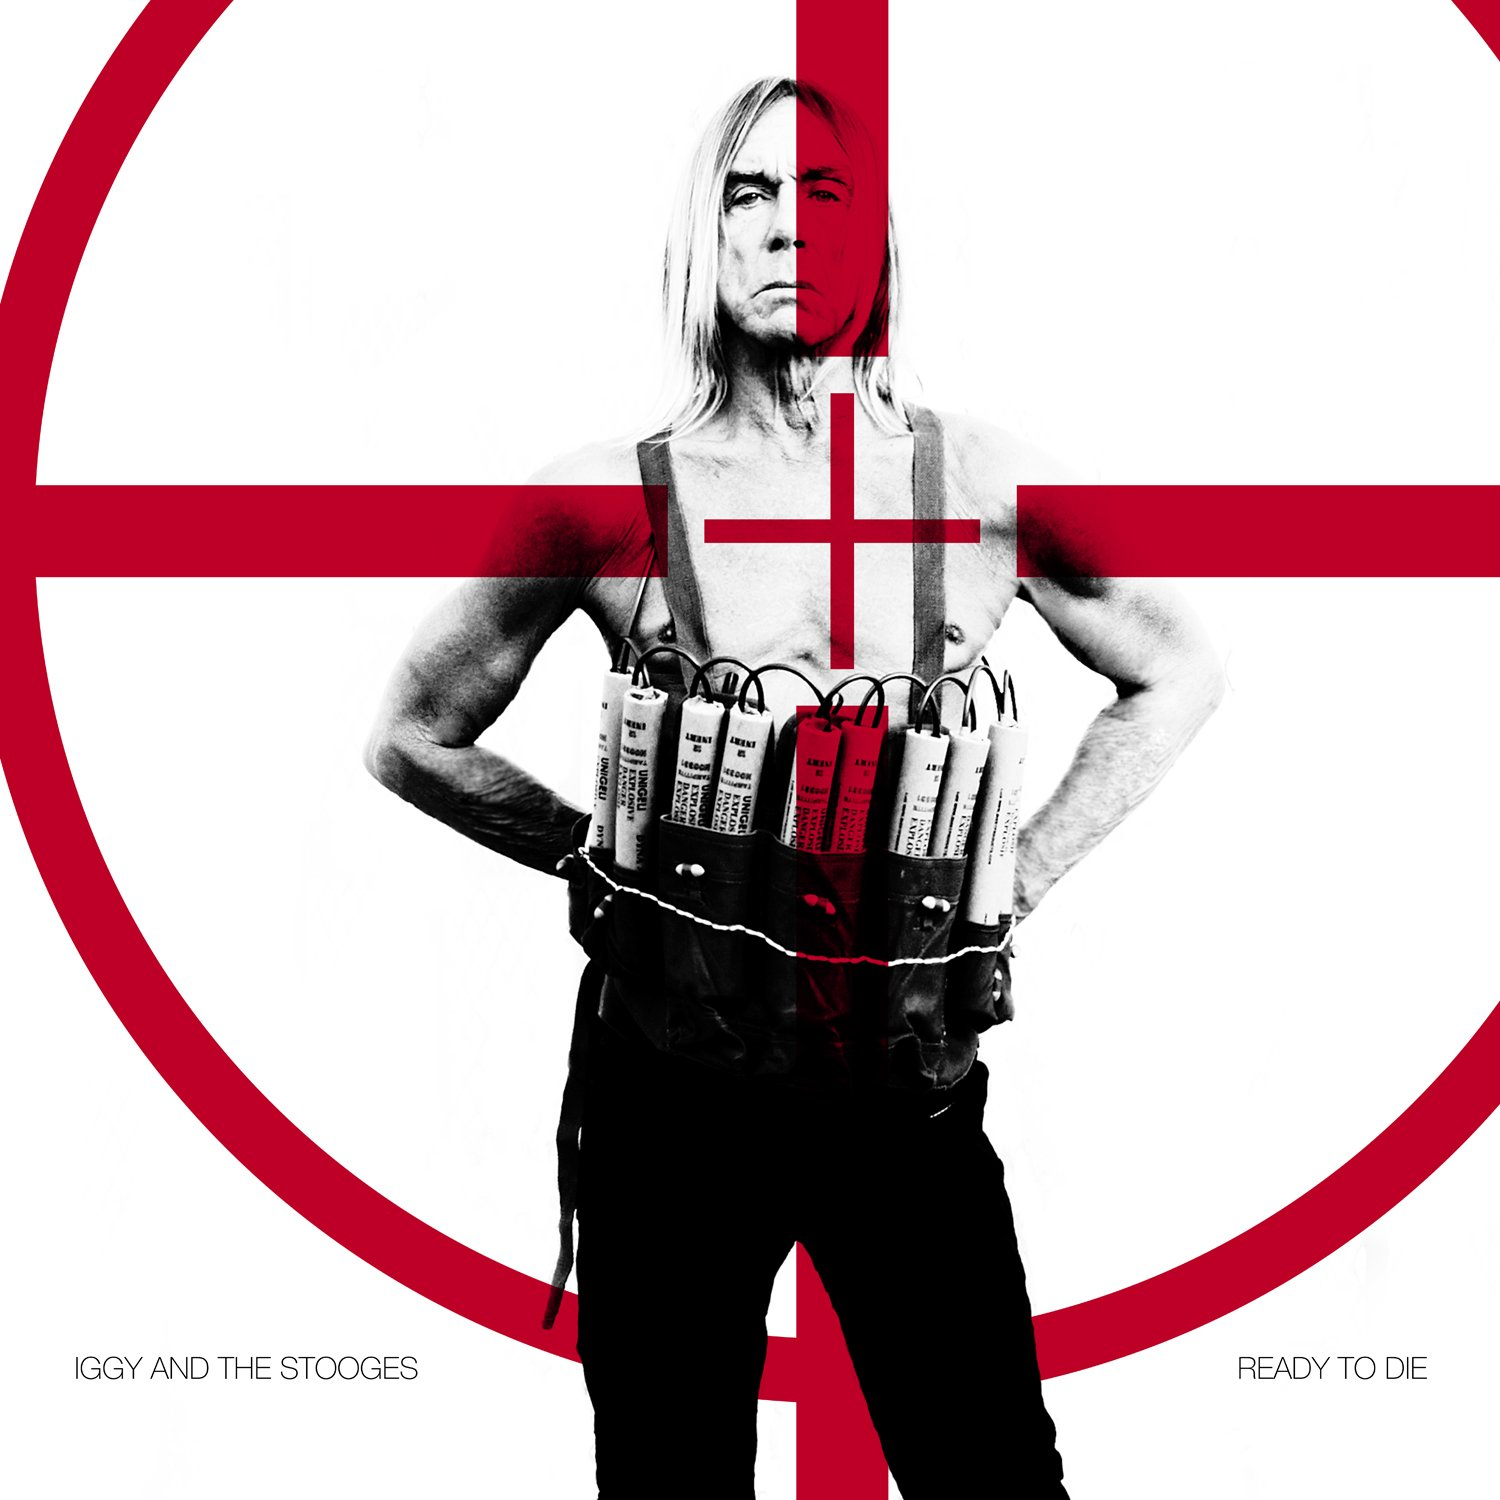 REVIEW: Iggy & The Stooges - Ready To Die